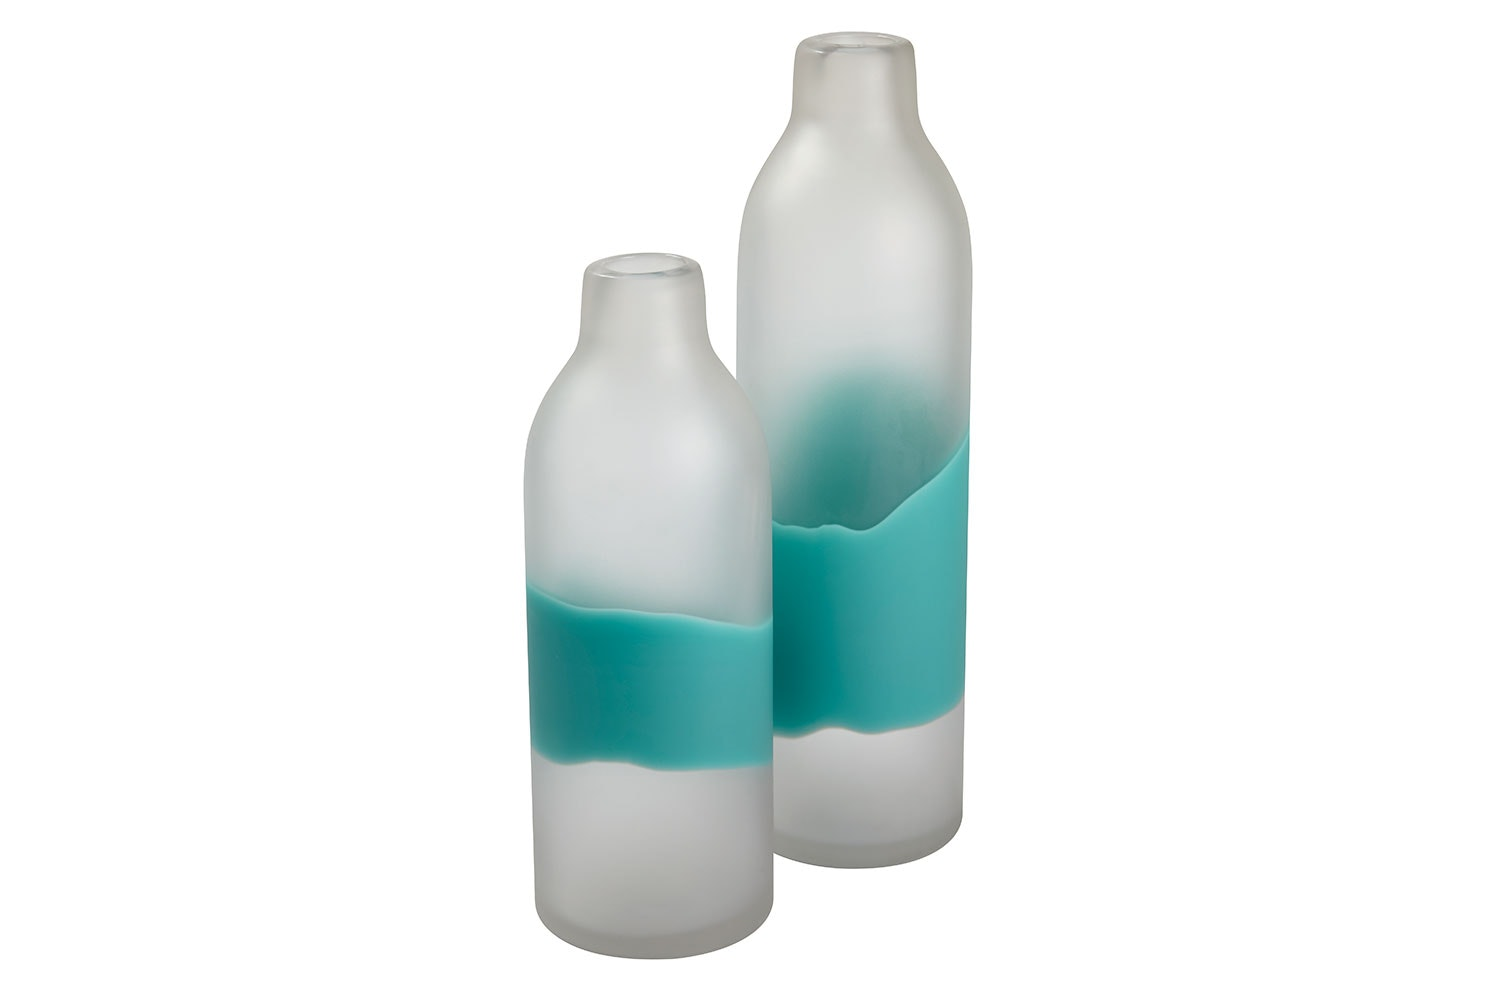 Smith Glass Vase by Albi - Group Shot